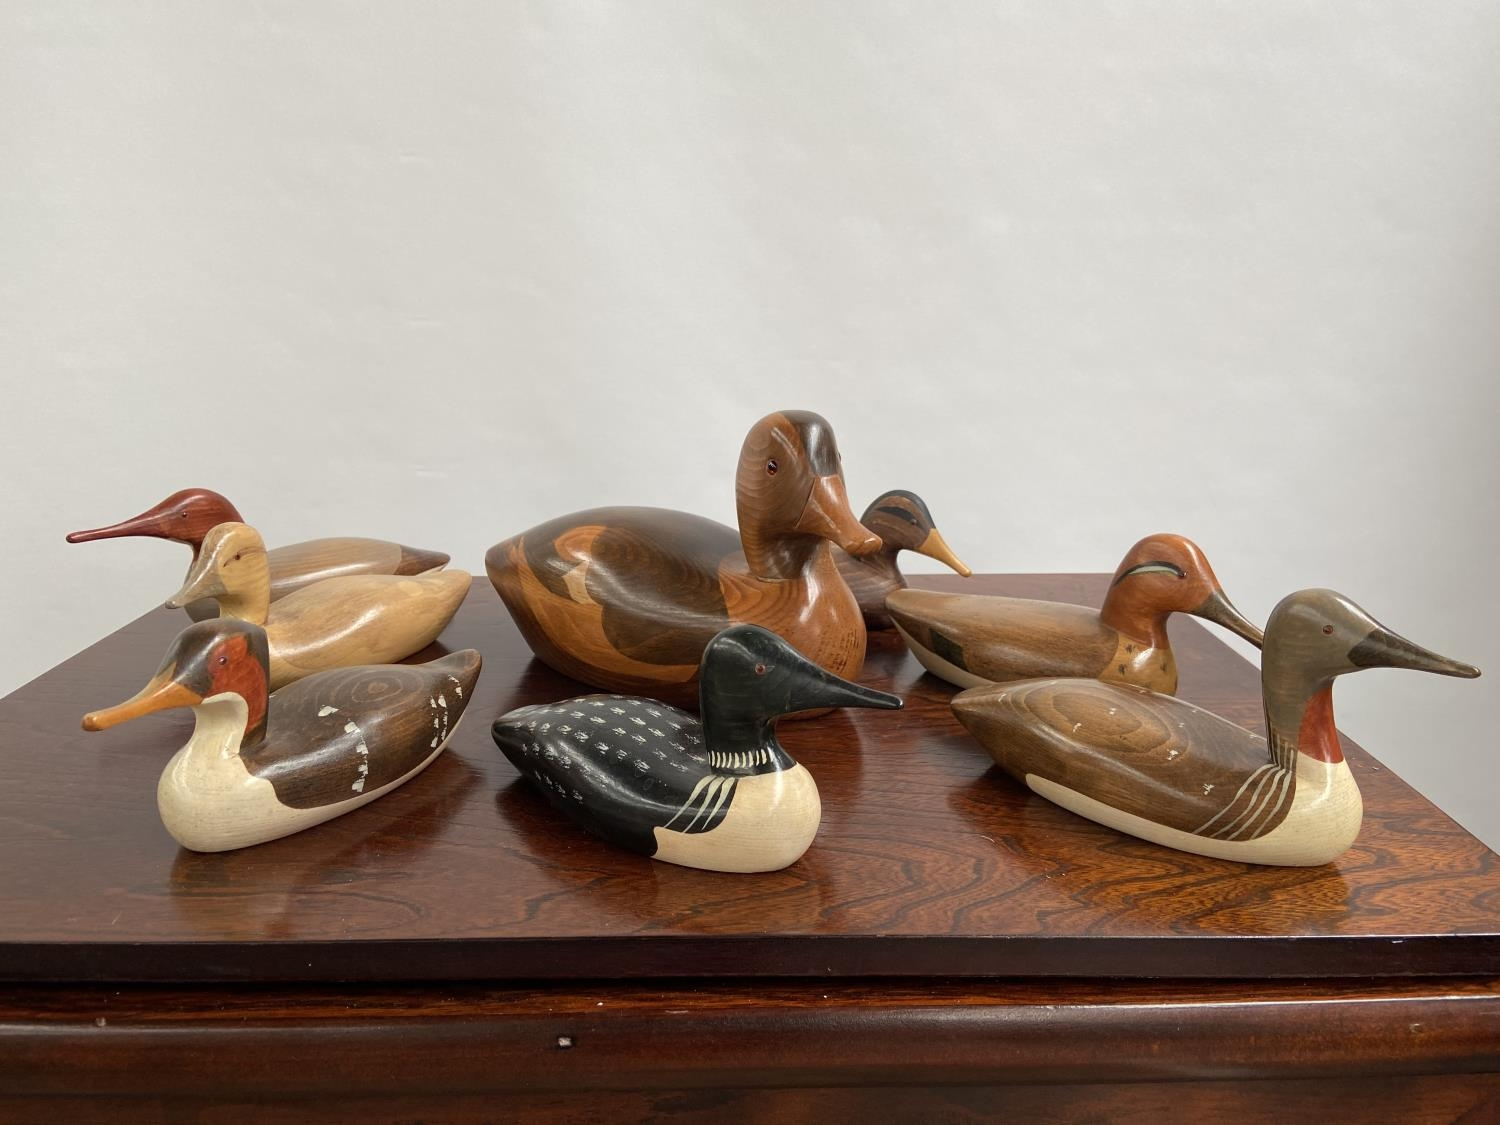 A Collection of hand carved wooden duck decoy sculptures by Jim Harkness.